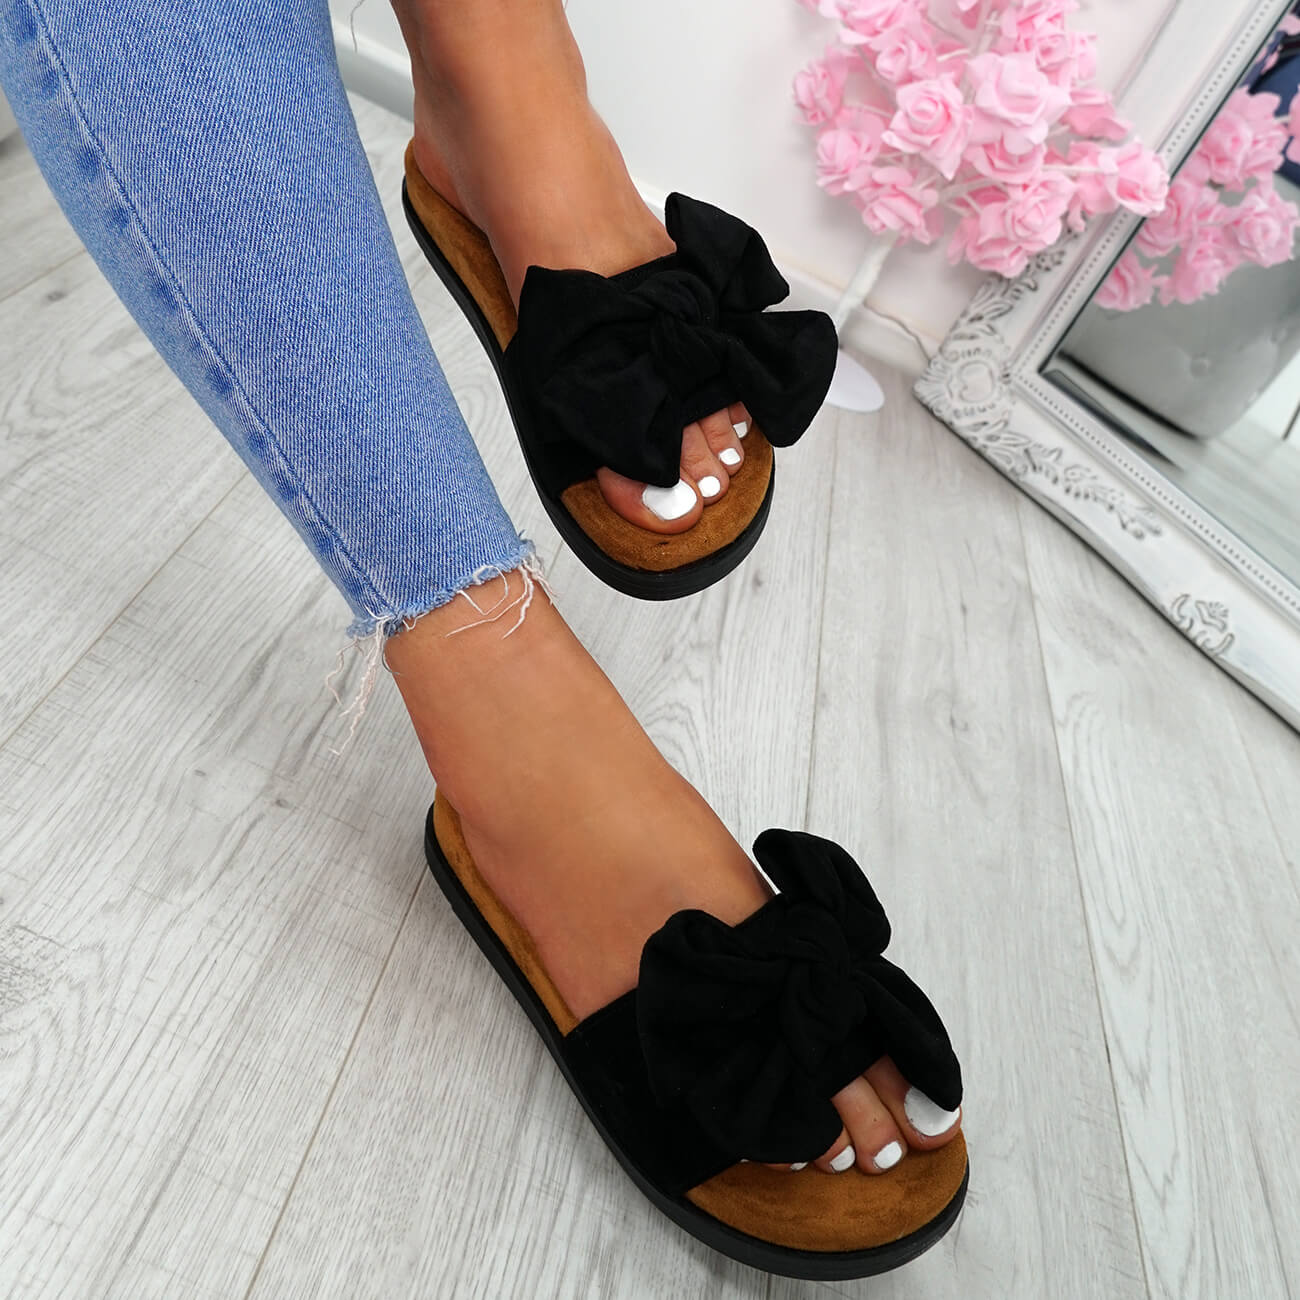 WOMENS-LADIES-FLAT-SANDALS-FRONT-BOW-COMFY-SUMMER-CASUAL-HOLIDAY-SHOES-SIZE-UK thumbnail 14